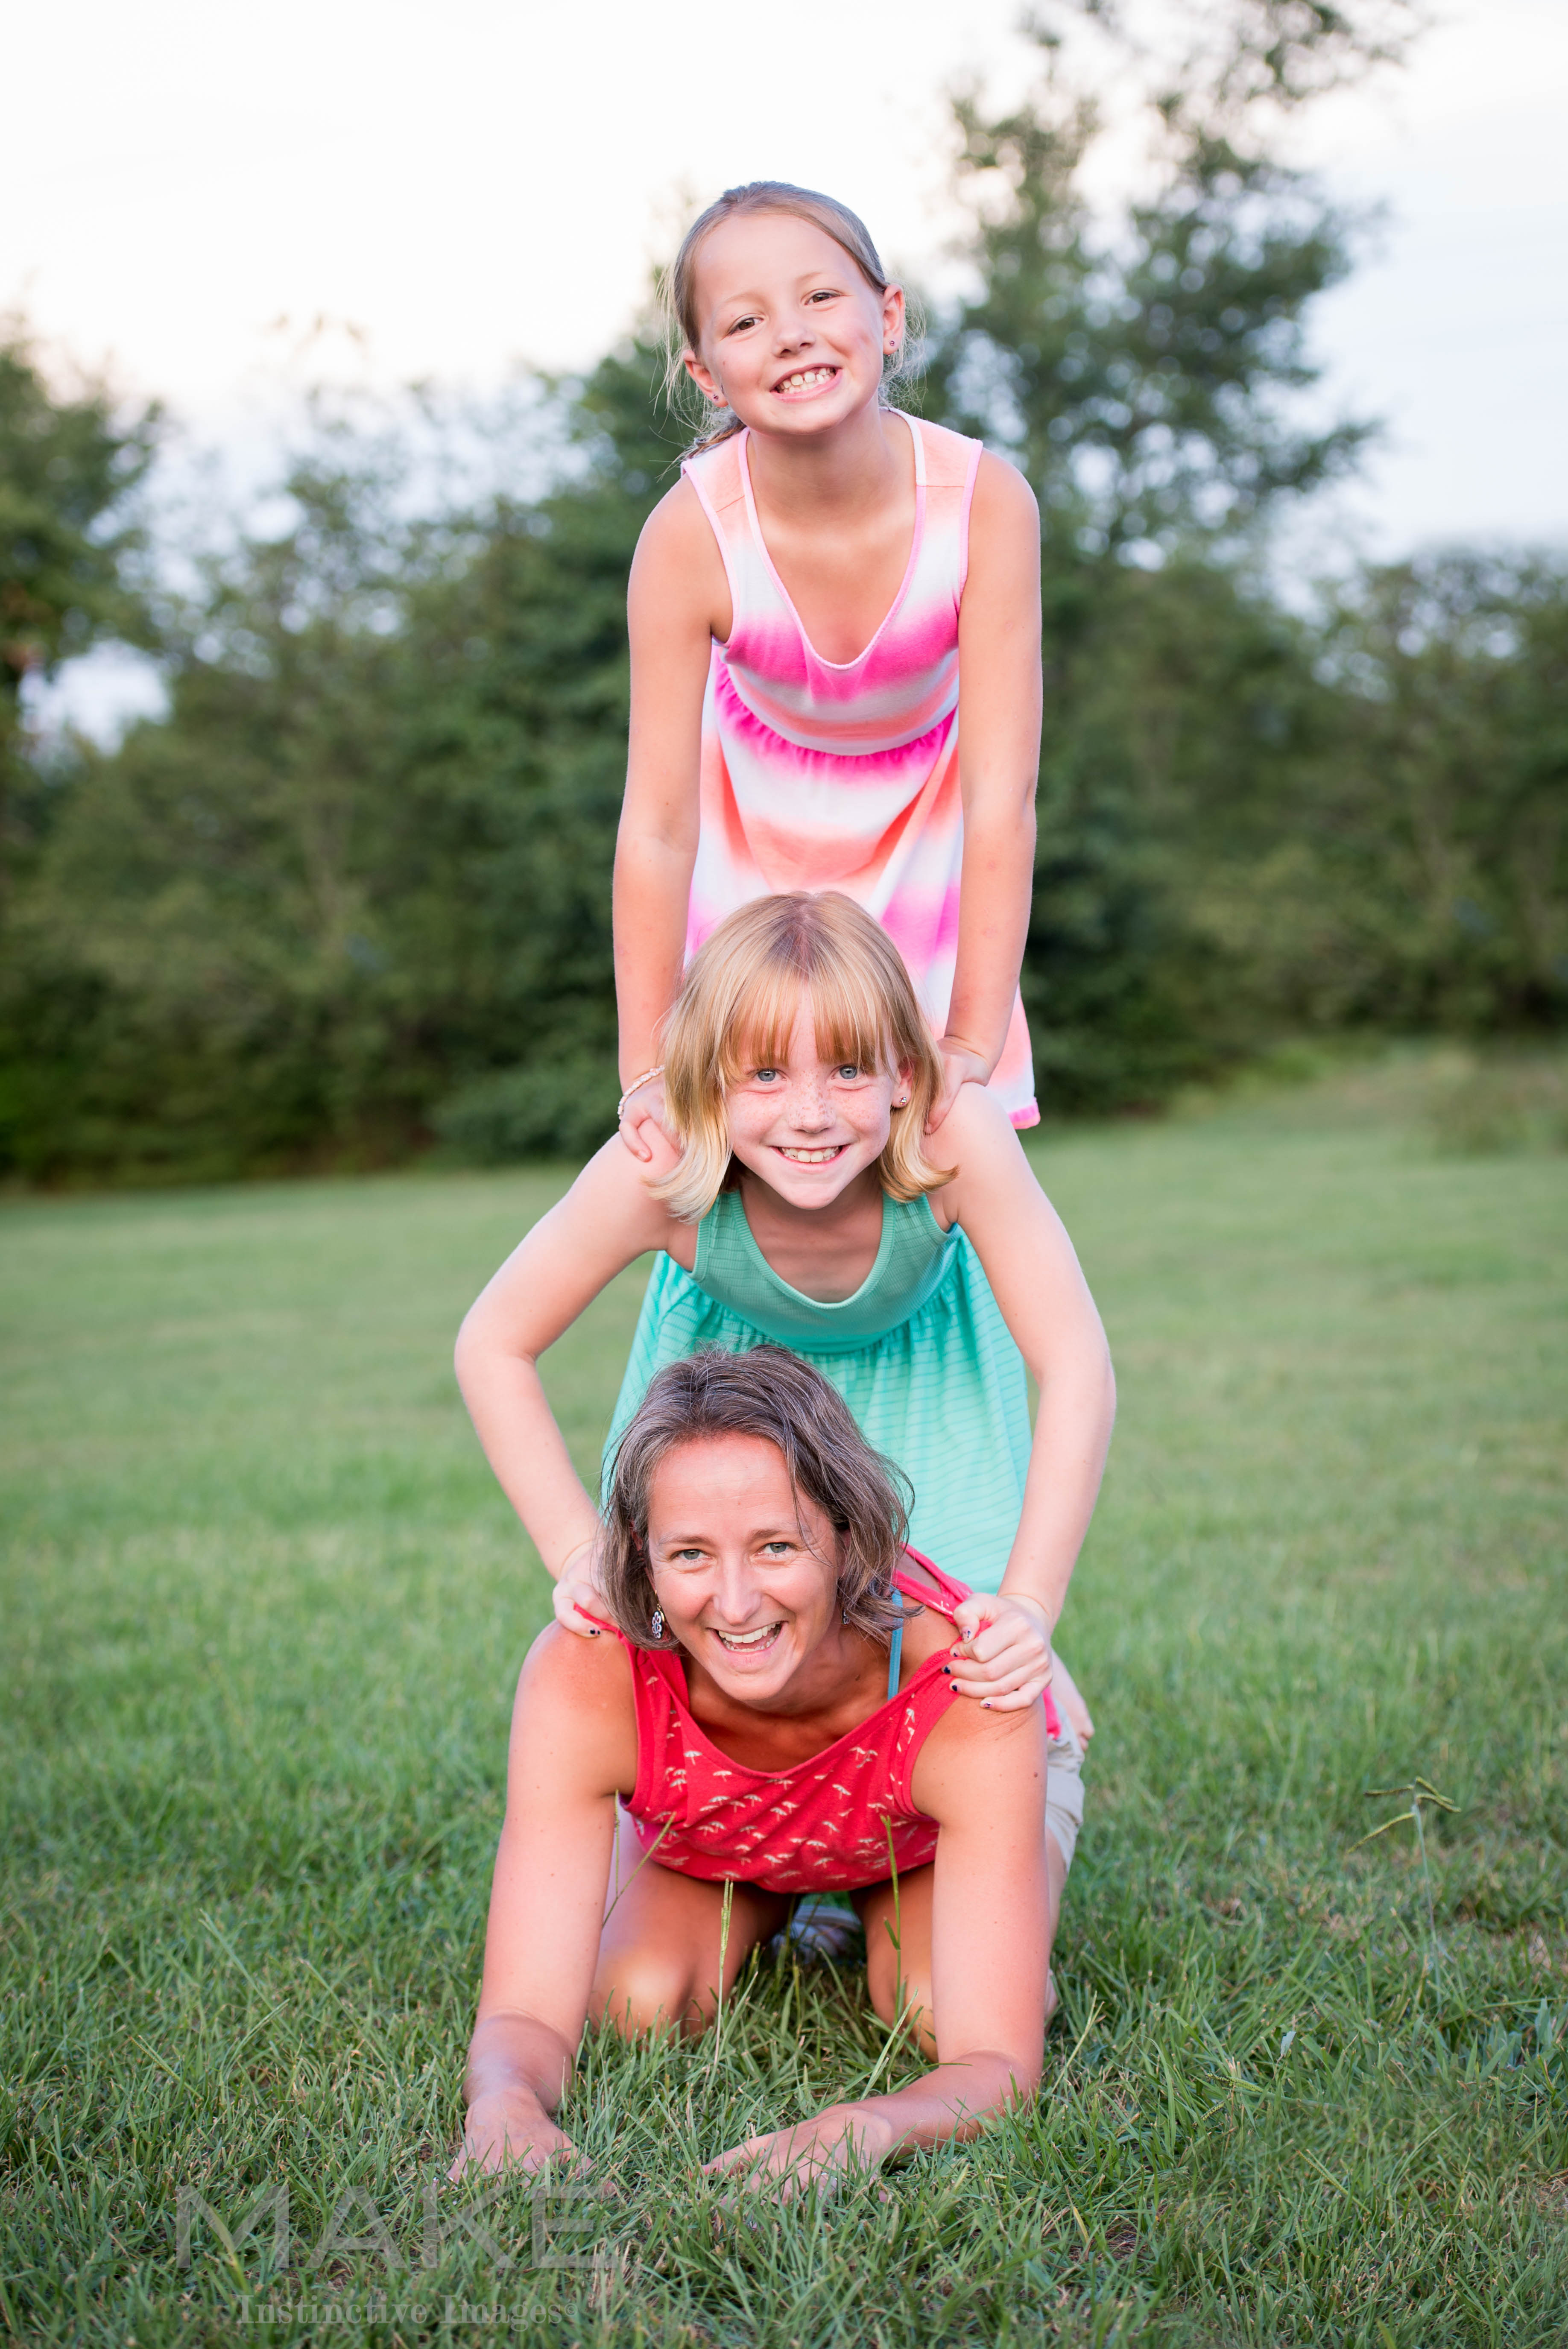 Mother-with-two-daughters-in-a-playful-candid-family-photo